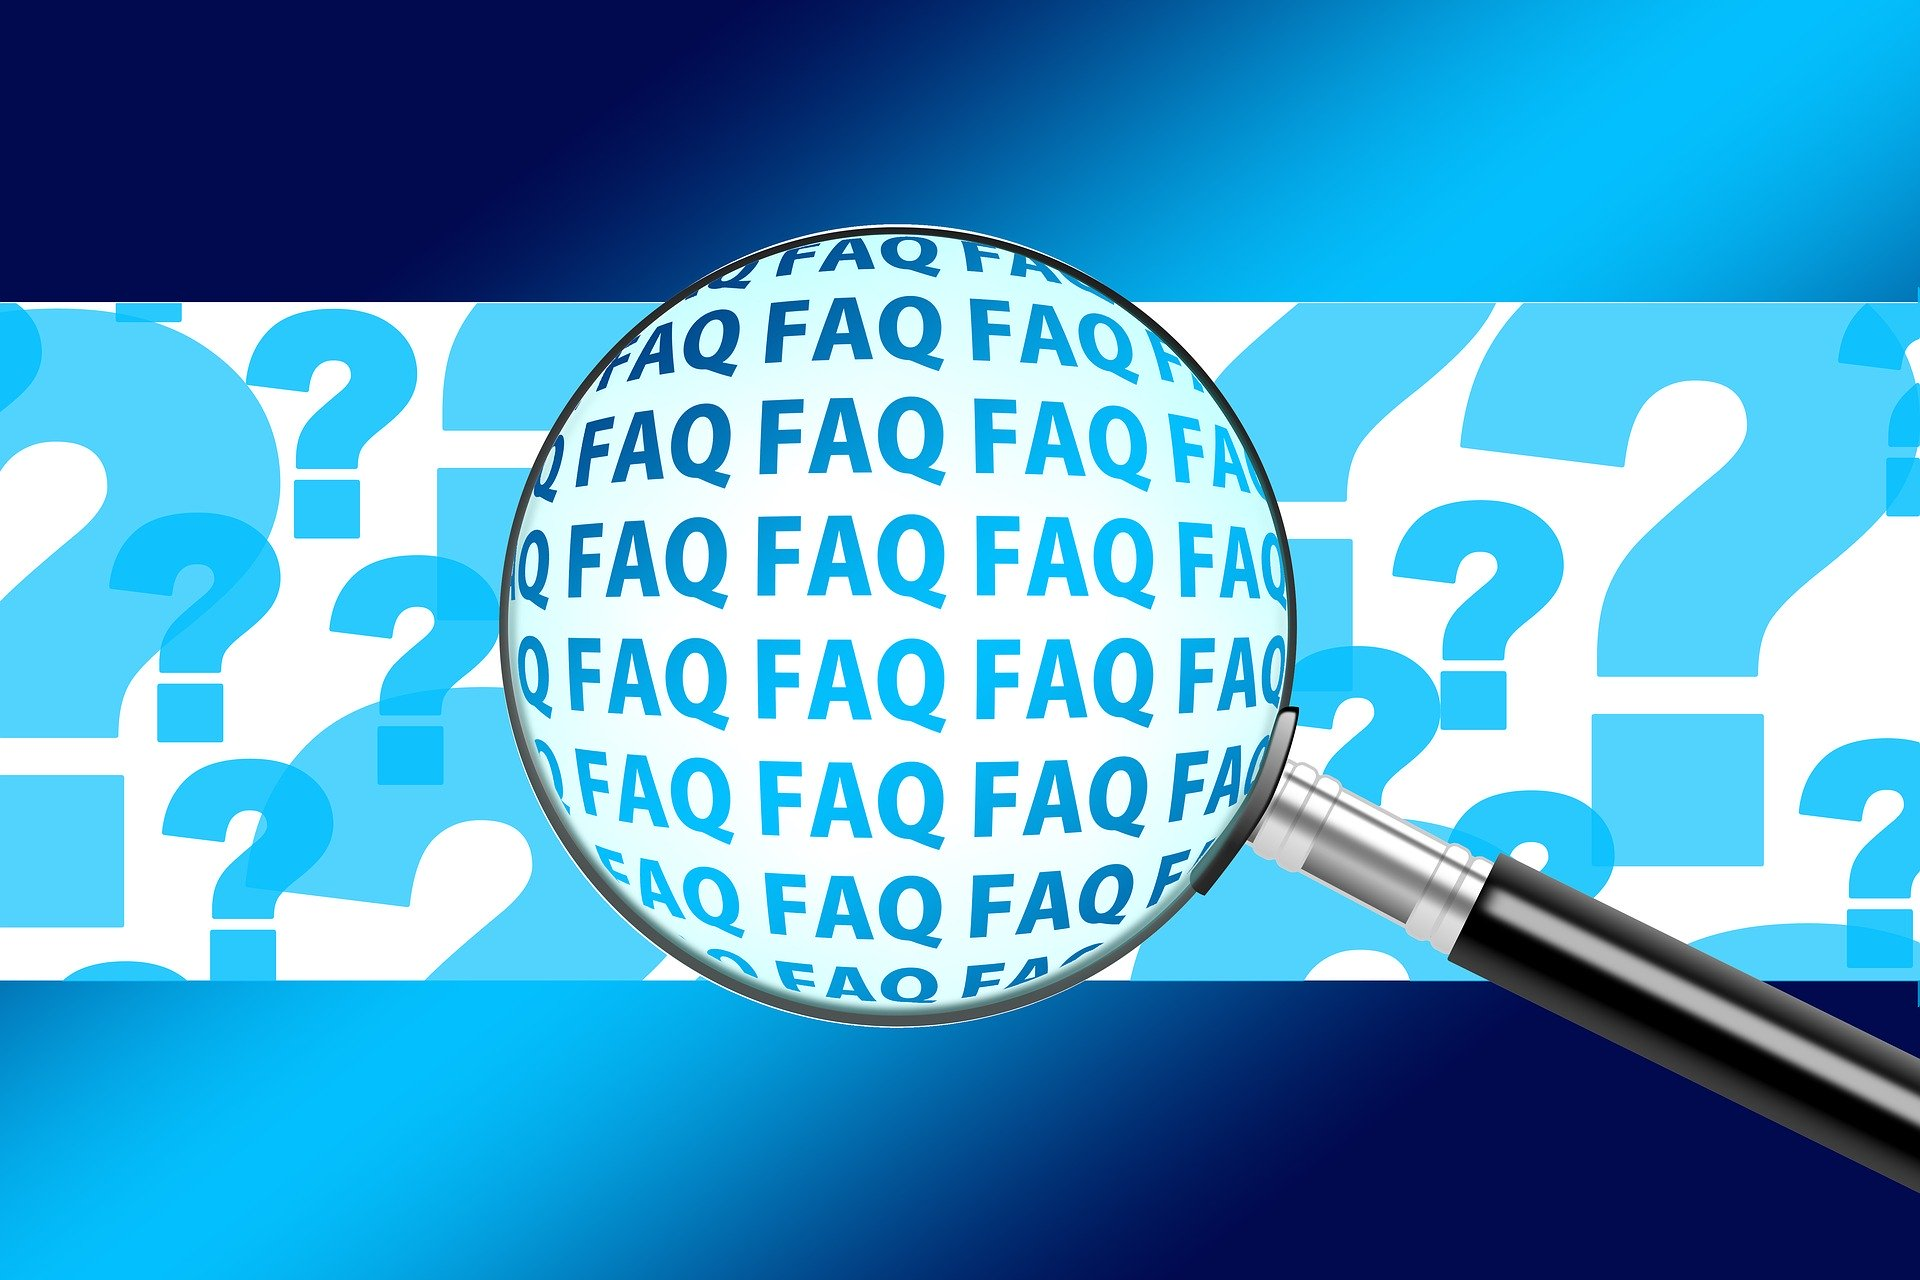 Find all you FAQs here. If you still have questions then please open a support ticket.